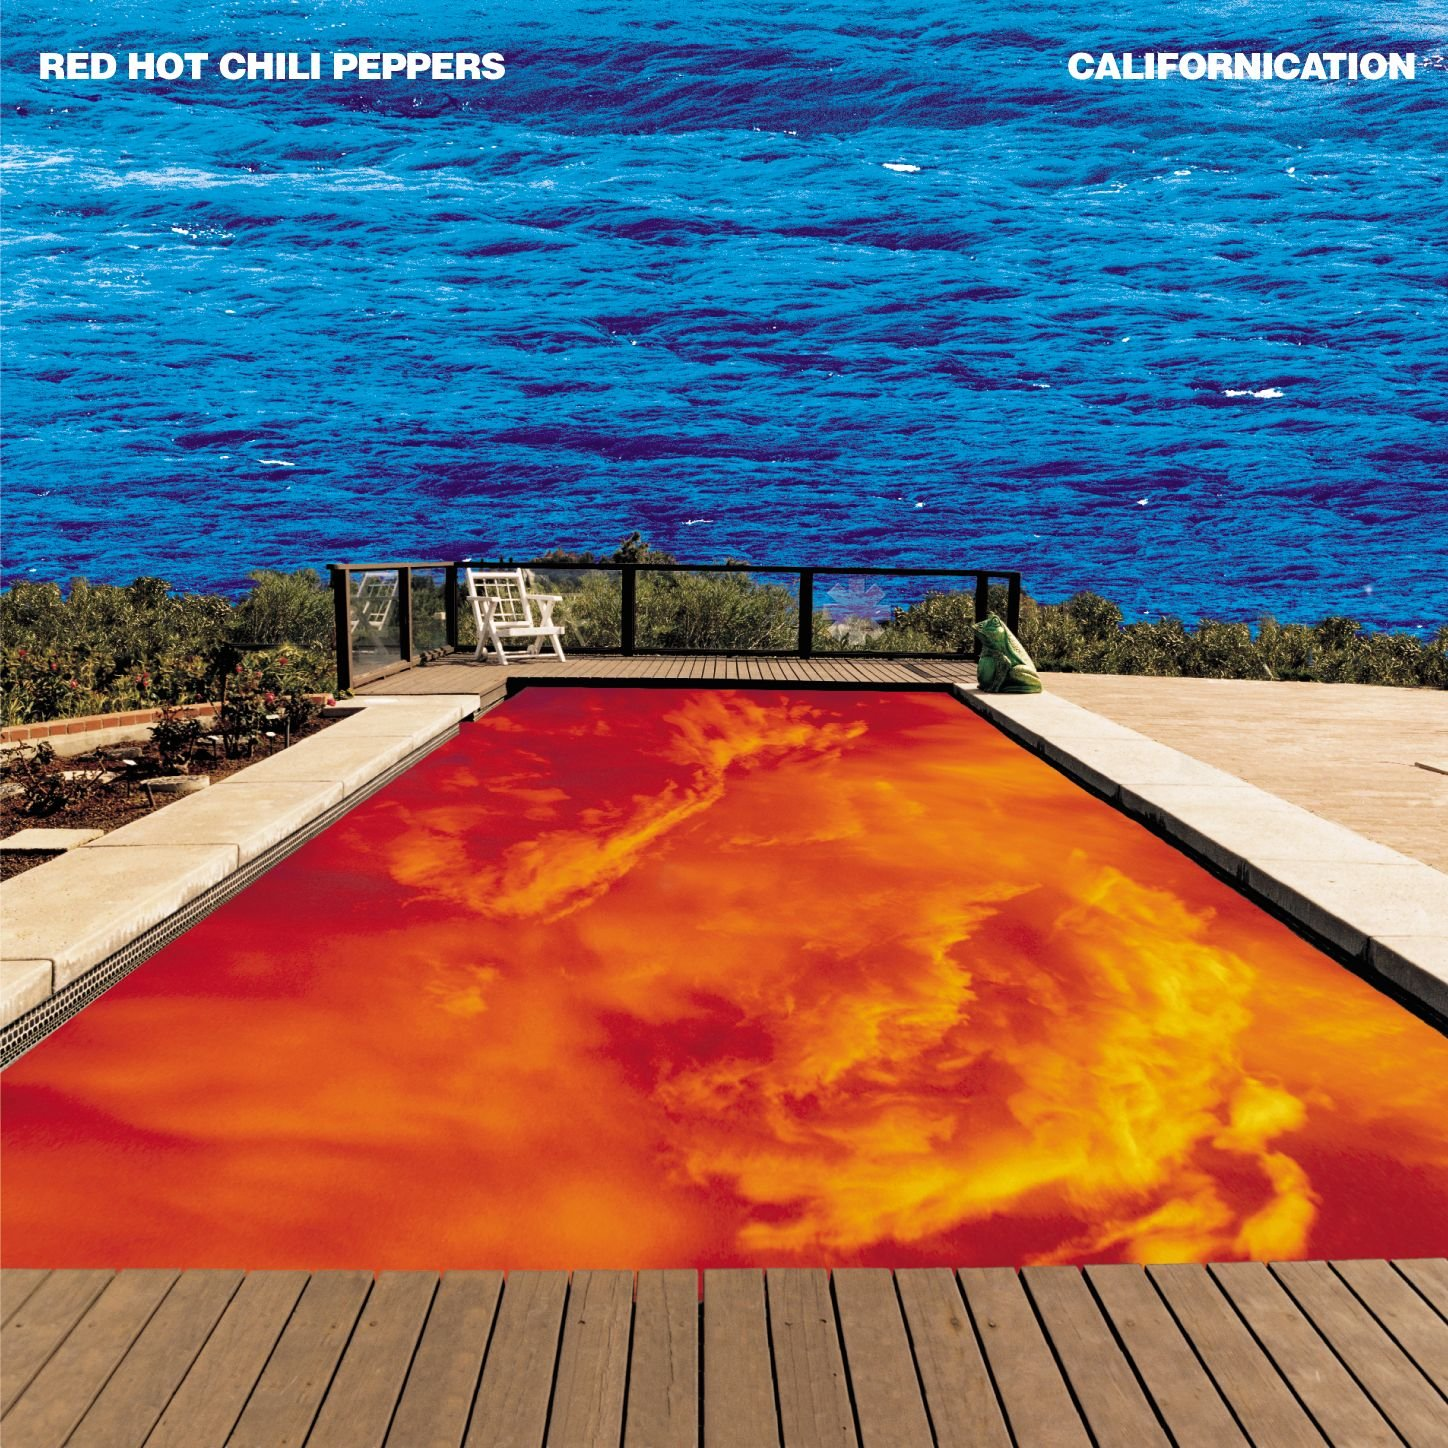 Image result for californication red hot chili peppers